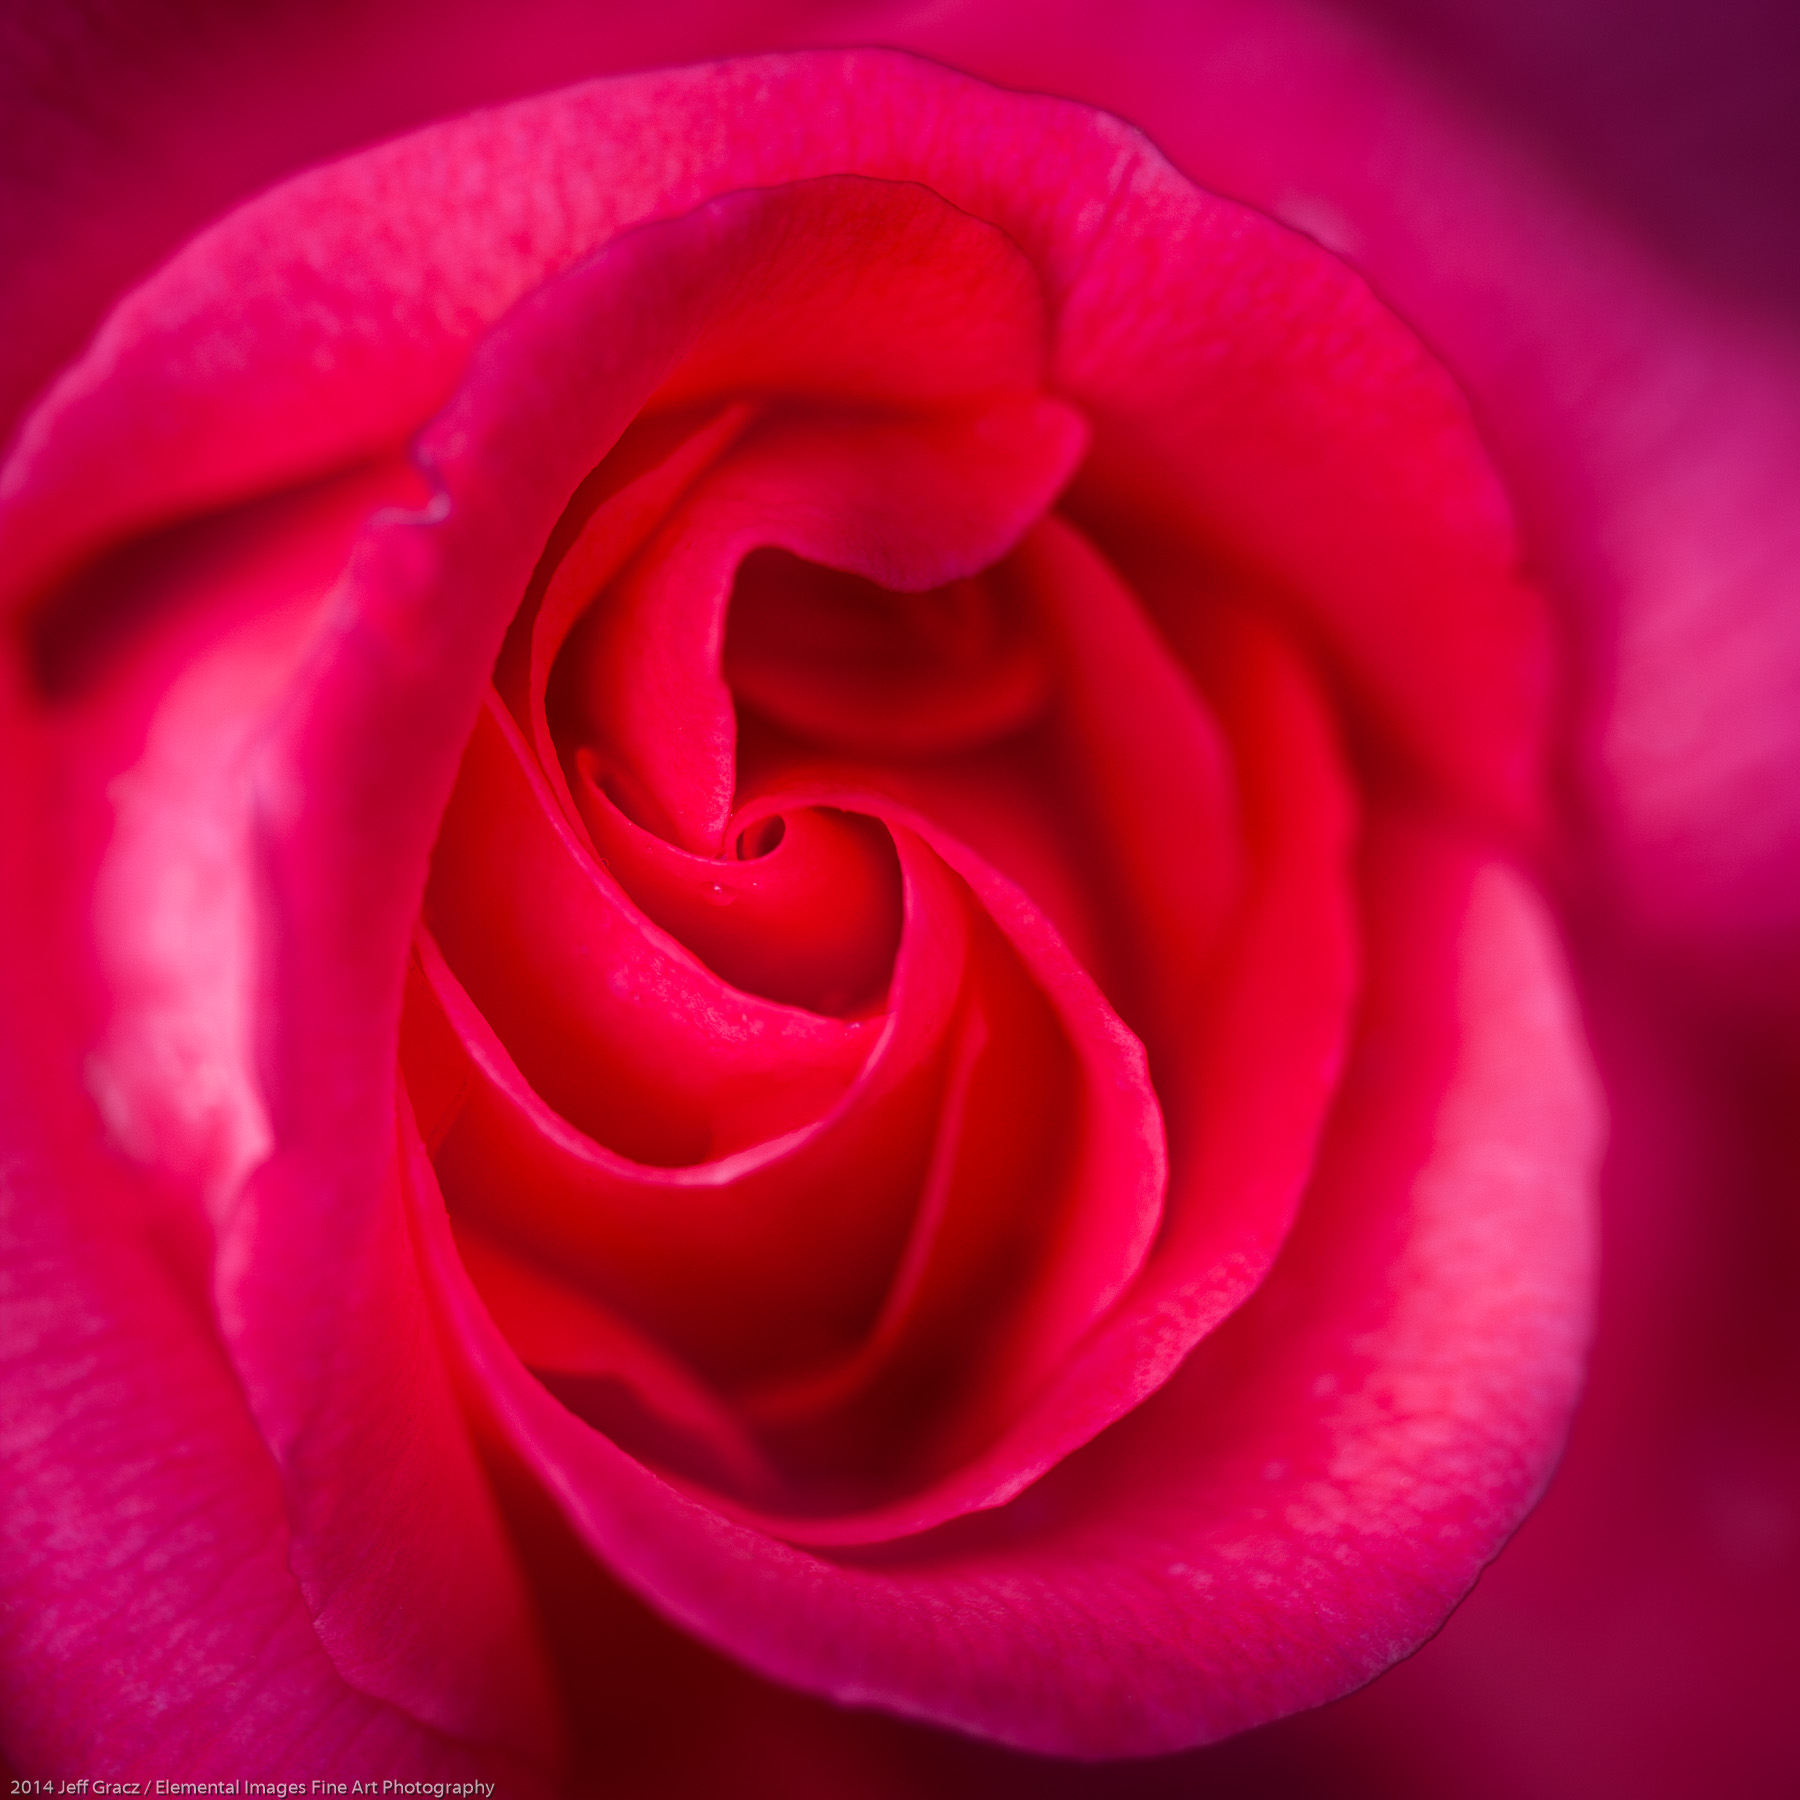 Roses LVII   Portland   OR   USA - © 2014 Jeff Gracz / Elemental Images Fine Art Photography - All Rights Reserved Worldwide